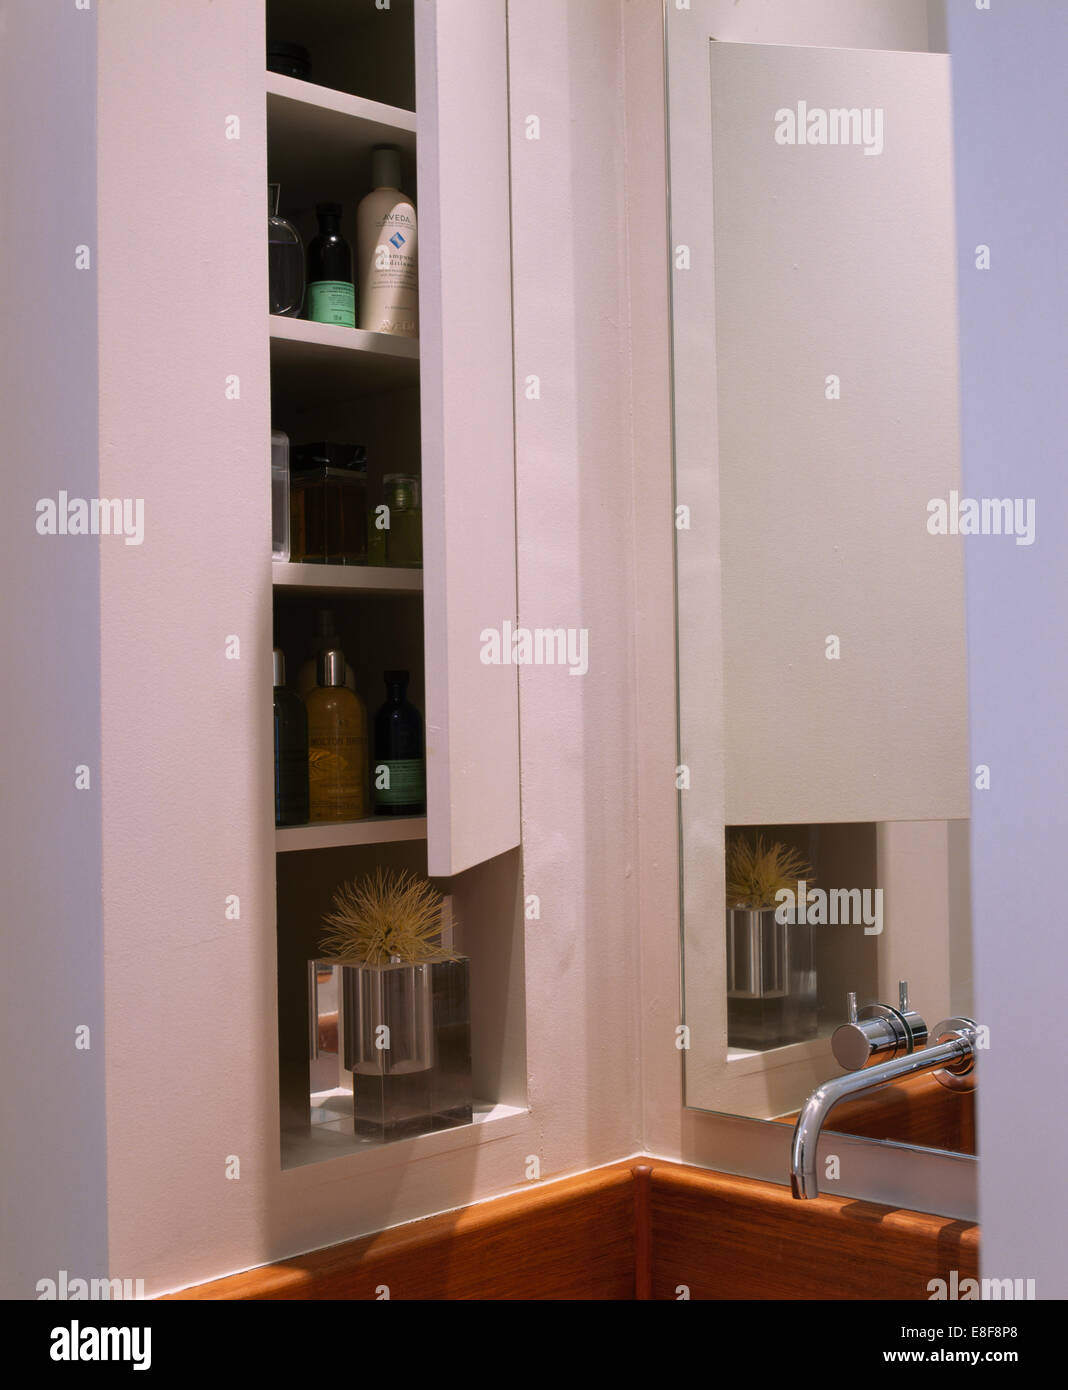 Close Up Of Bathroom Cupboard With Door Open To Reveal Toiletries On Shelves Beside Mirror And Chrome Tap